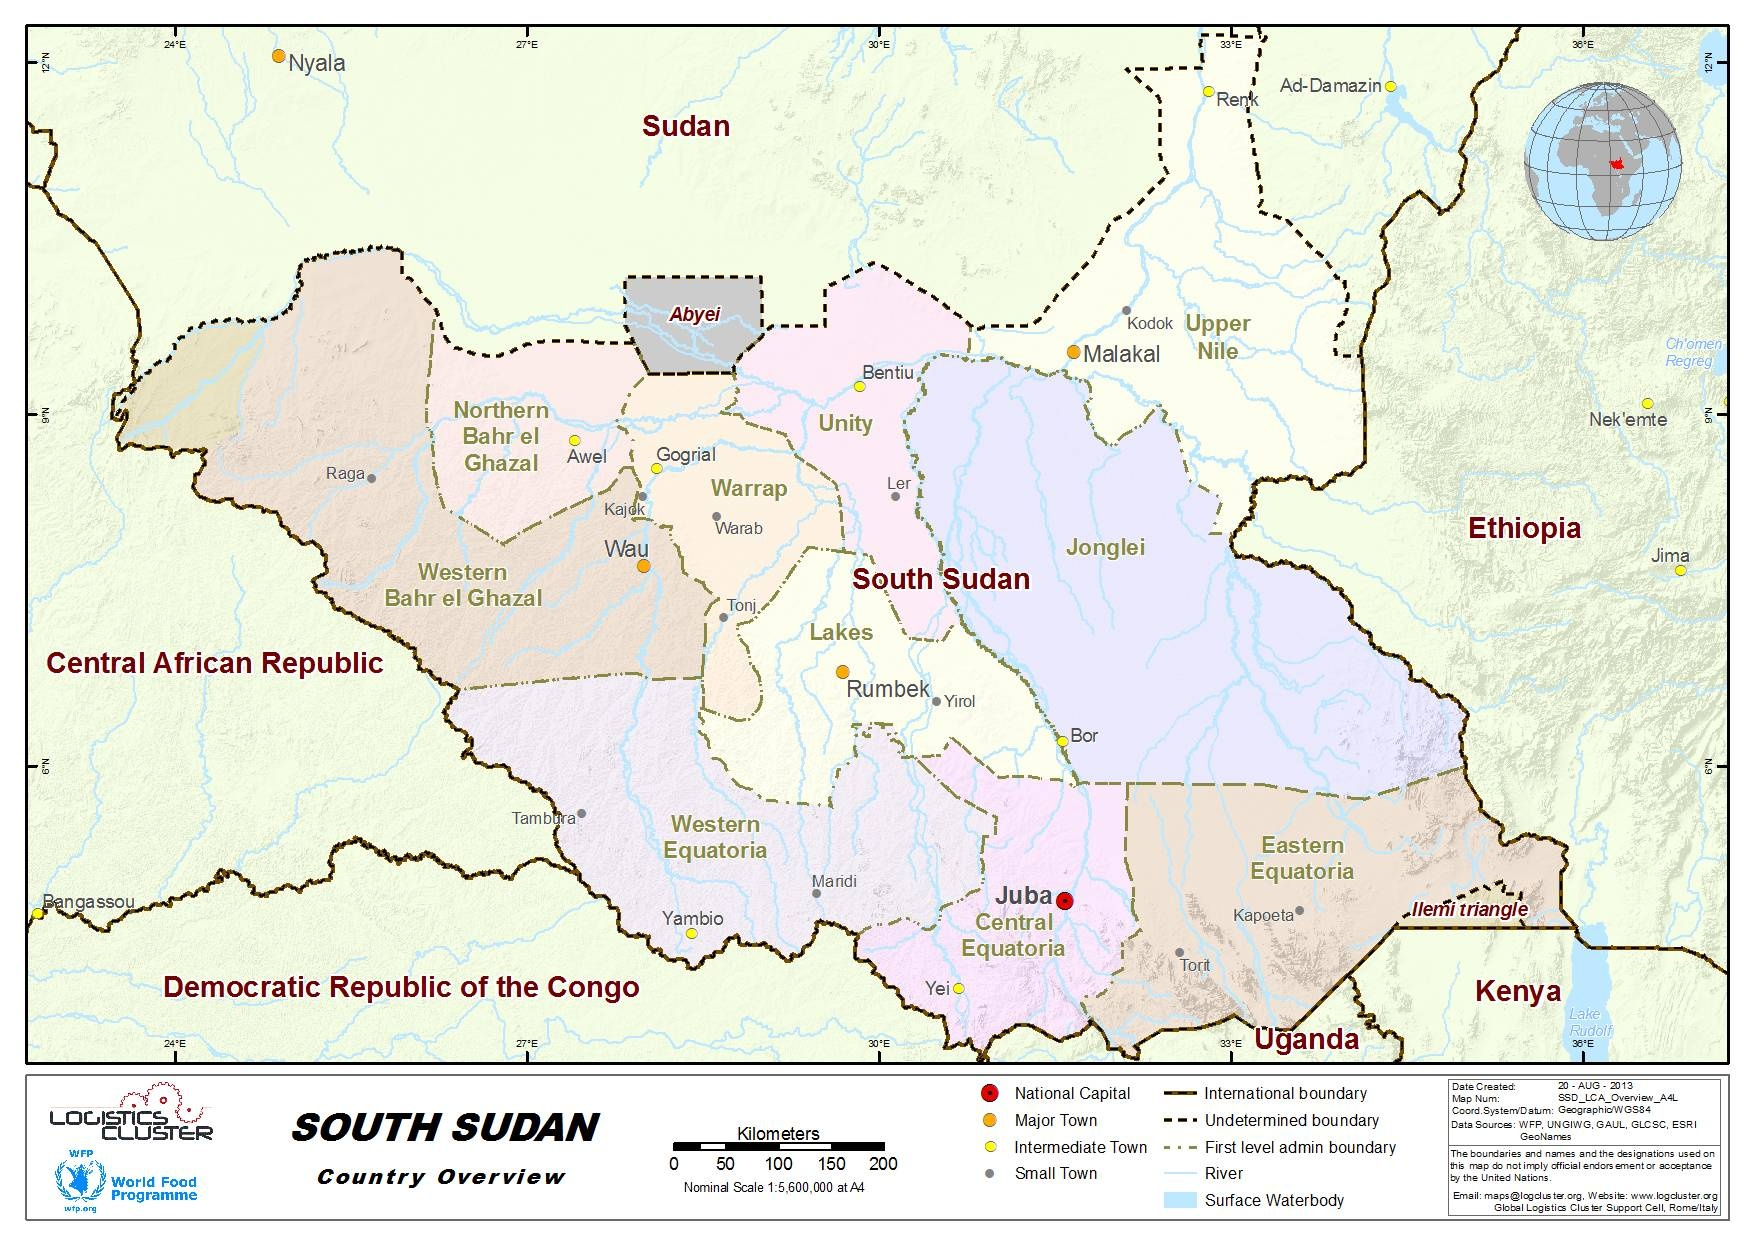 sudan and south sudan an overview Overview of corruption in south sudan background the history of south sudan is closely intertwined with the history of sudan since sudan's independence from the british in 1956, it faced long civil wars, involving ethnic, religious and economic conflicts between.